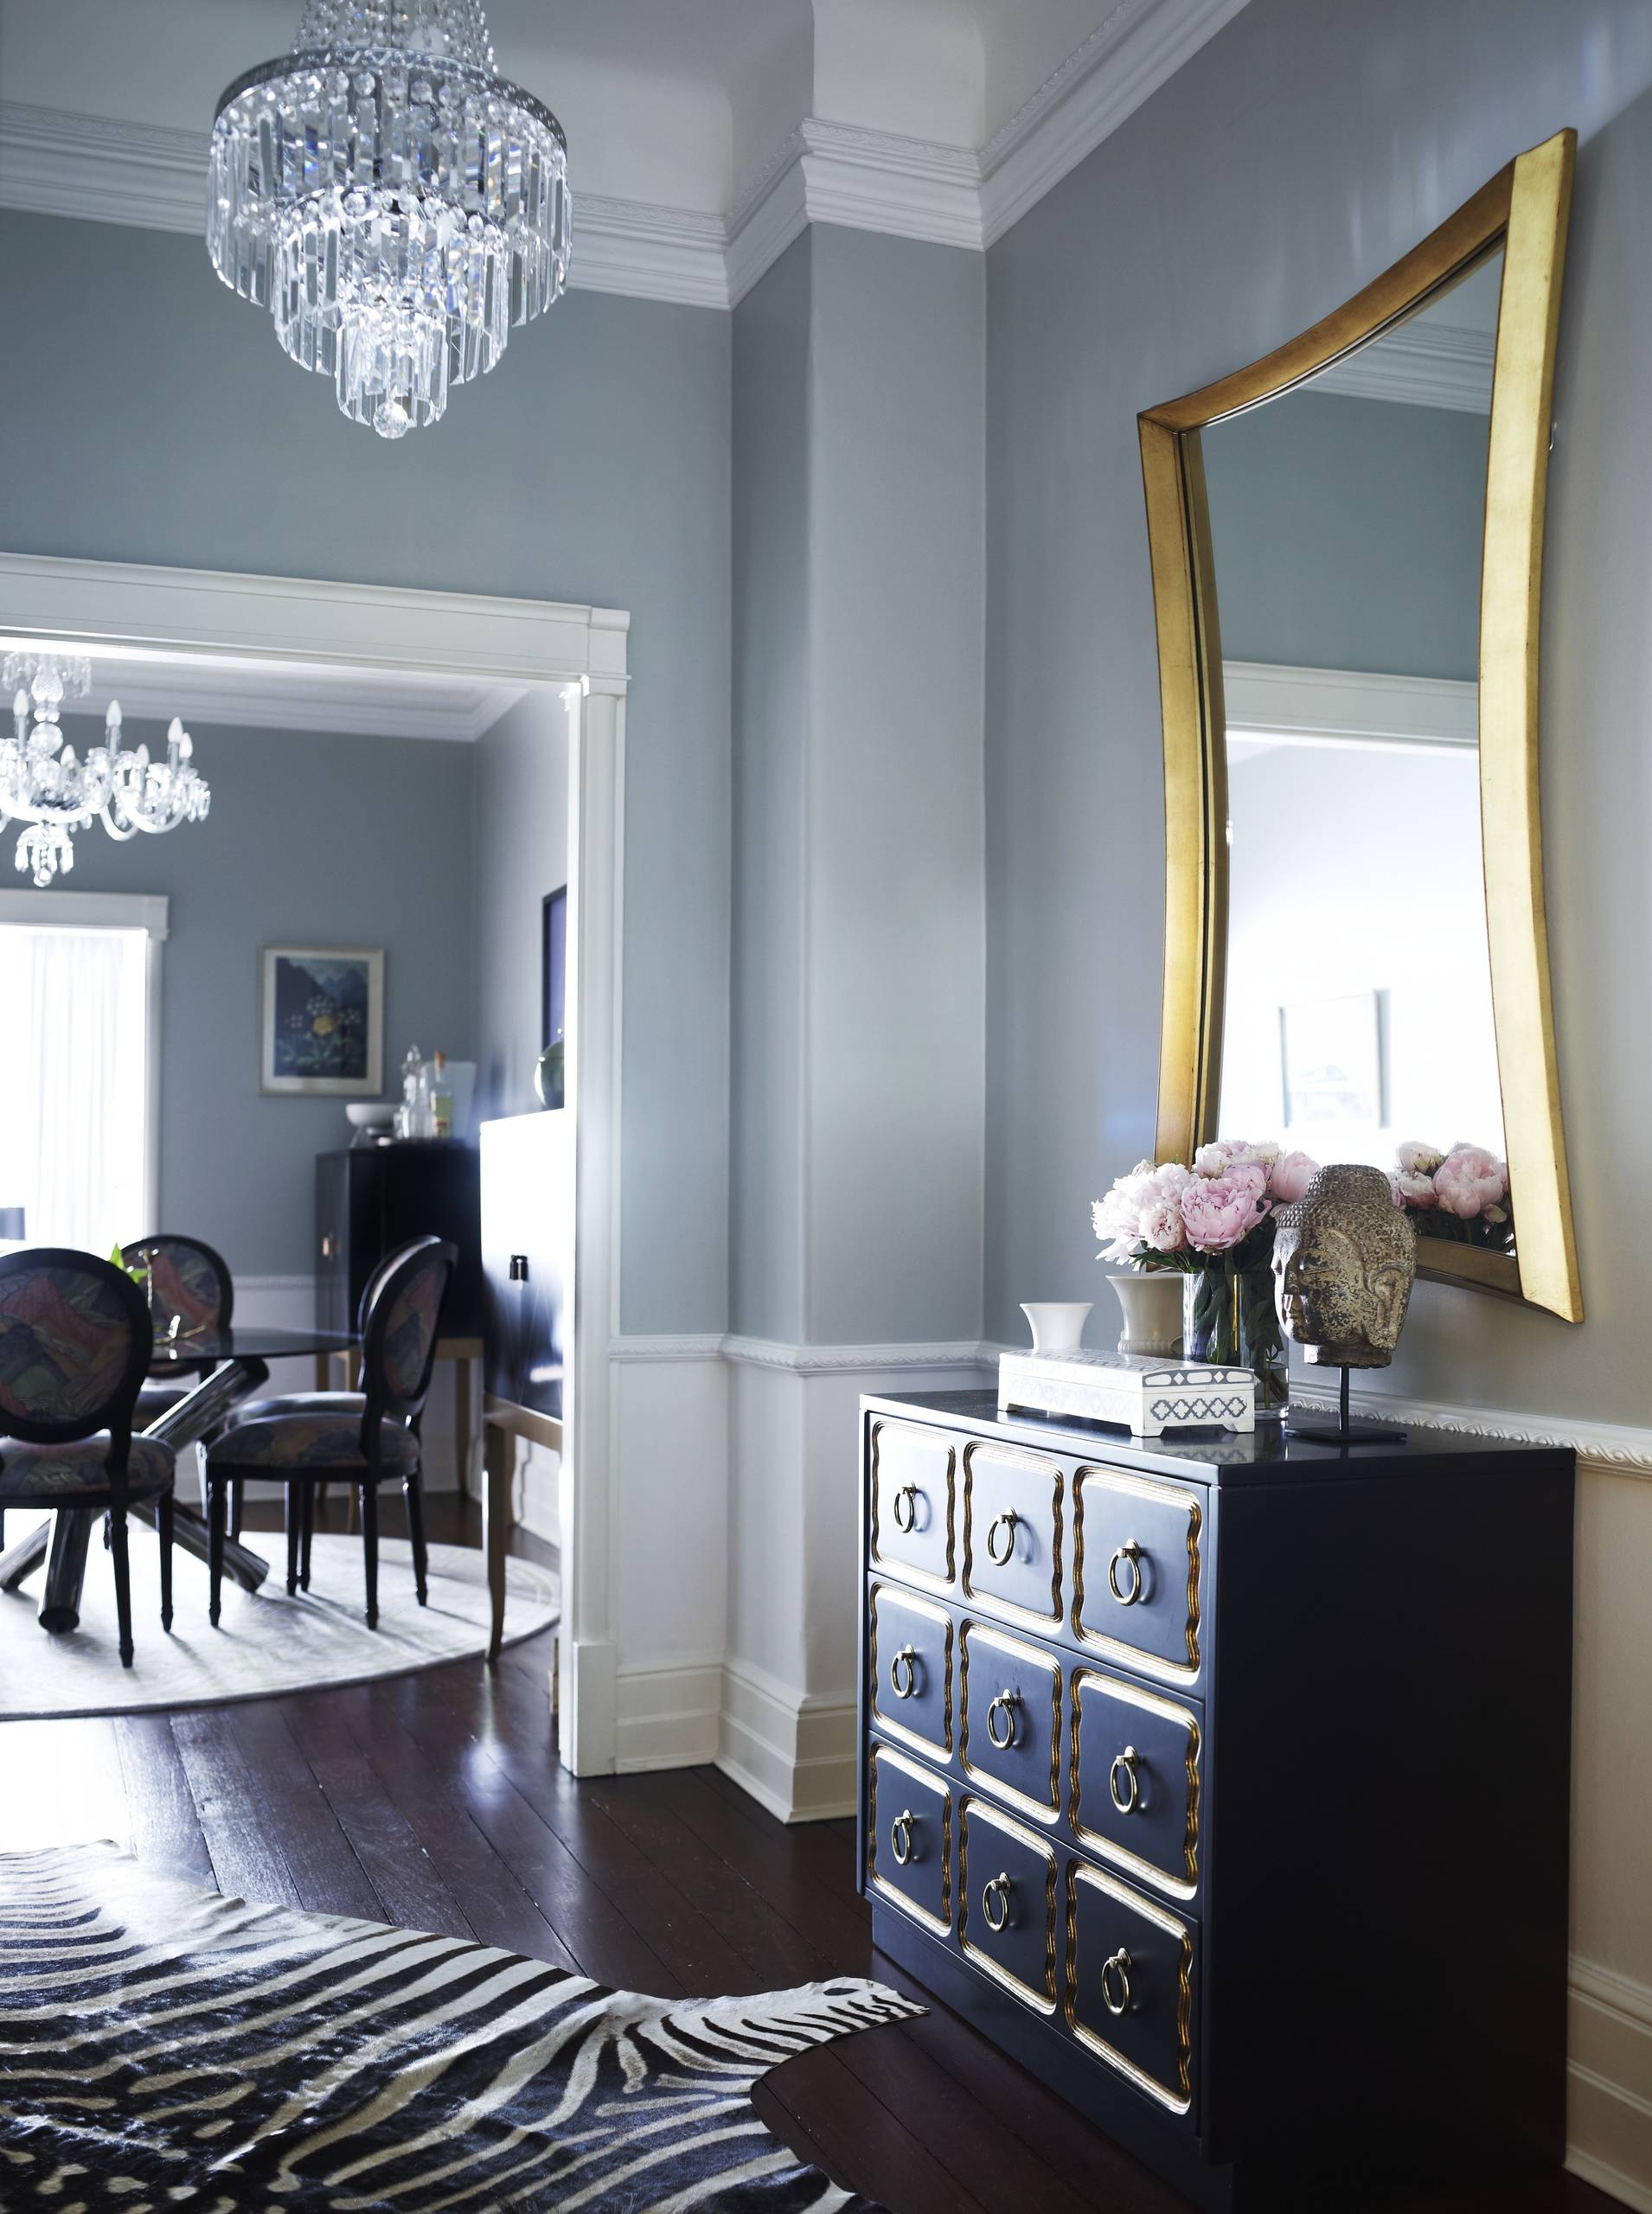 10 Living Rooms That Will Make You Want To Redecorate: 4 Compromises That Will Save Serious Cash When